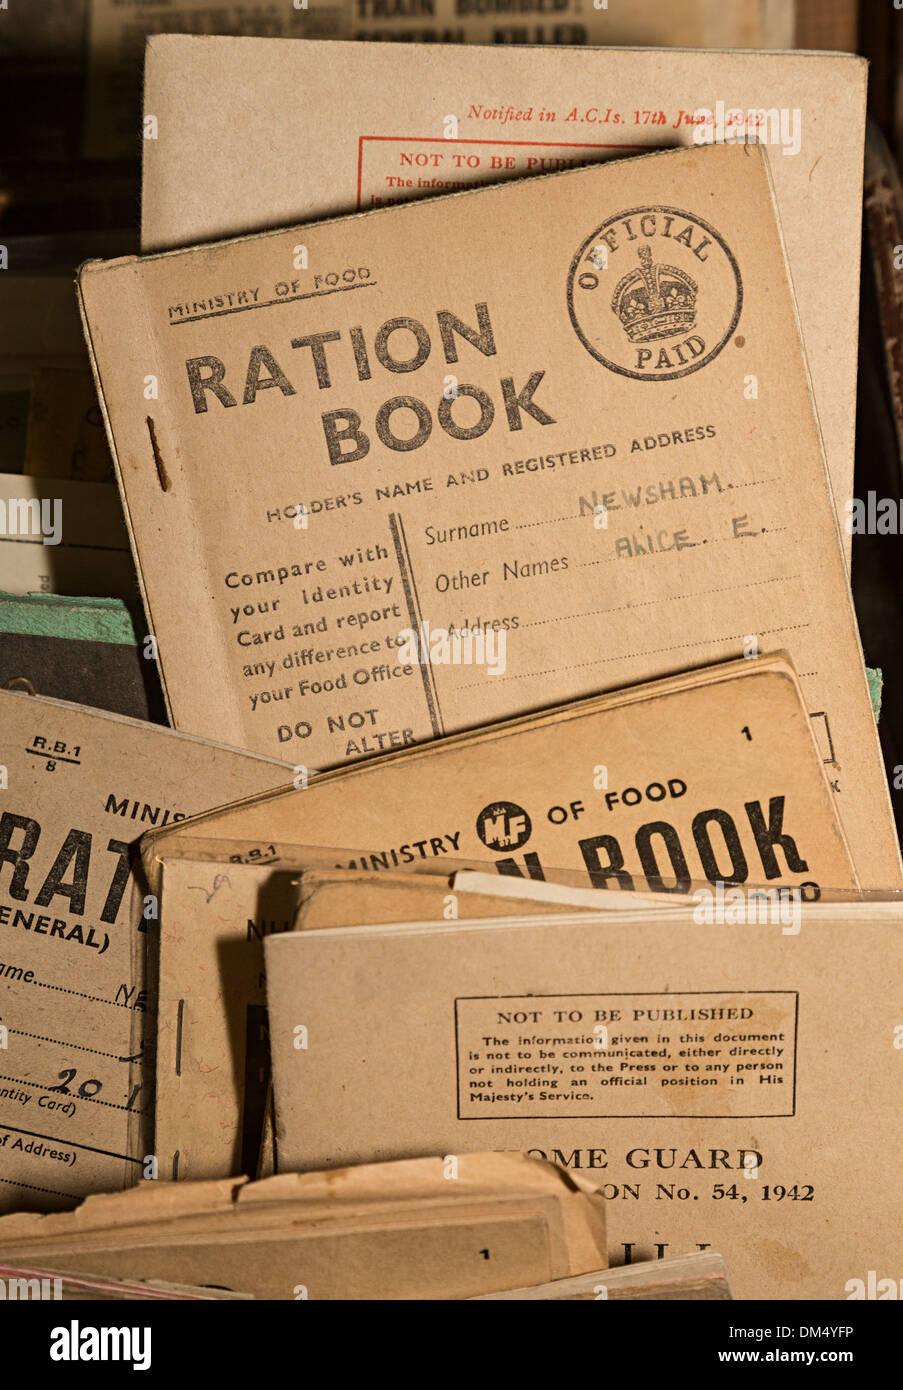 Second World War ration books in museum - Stock Image